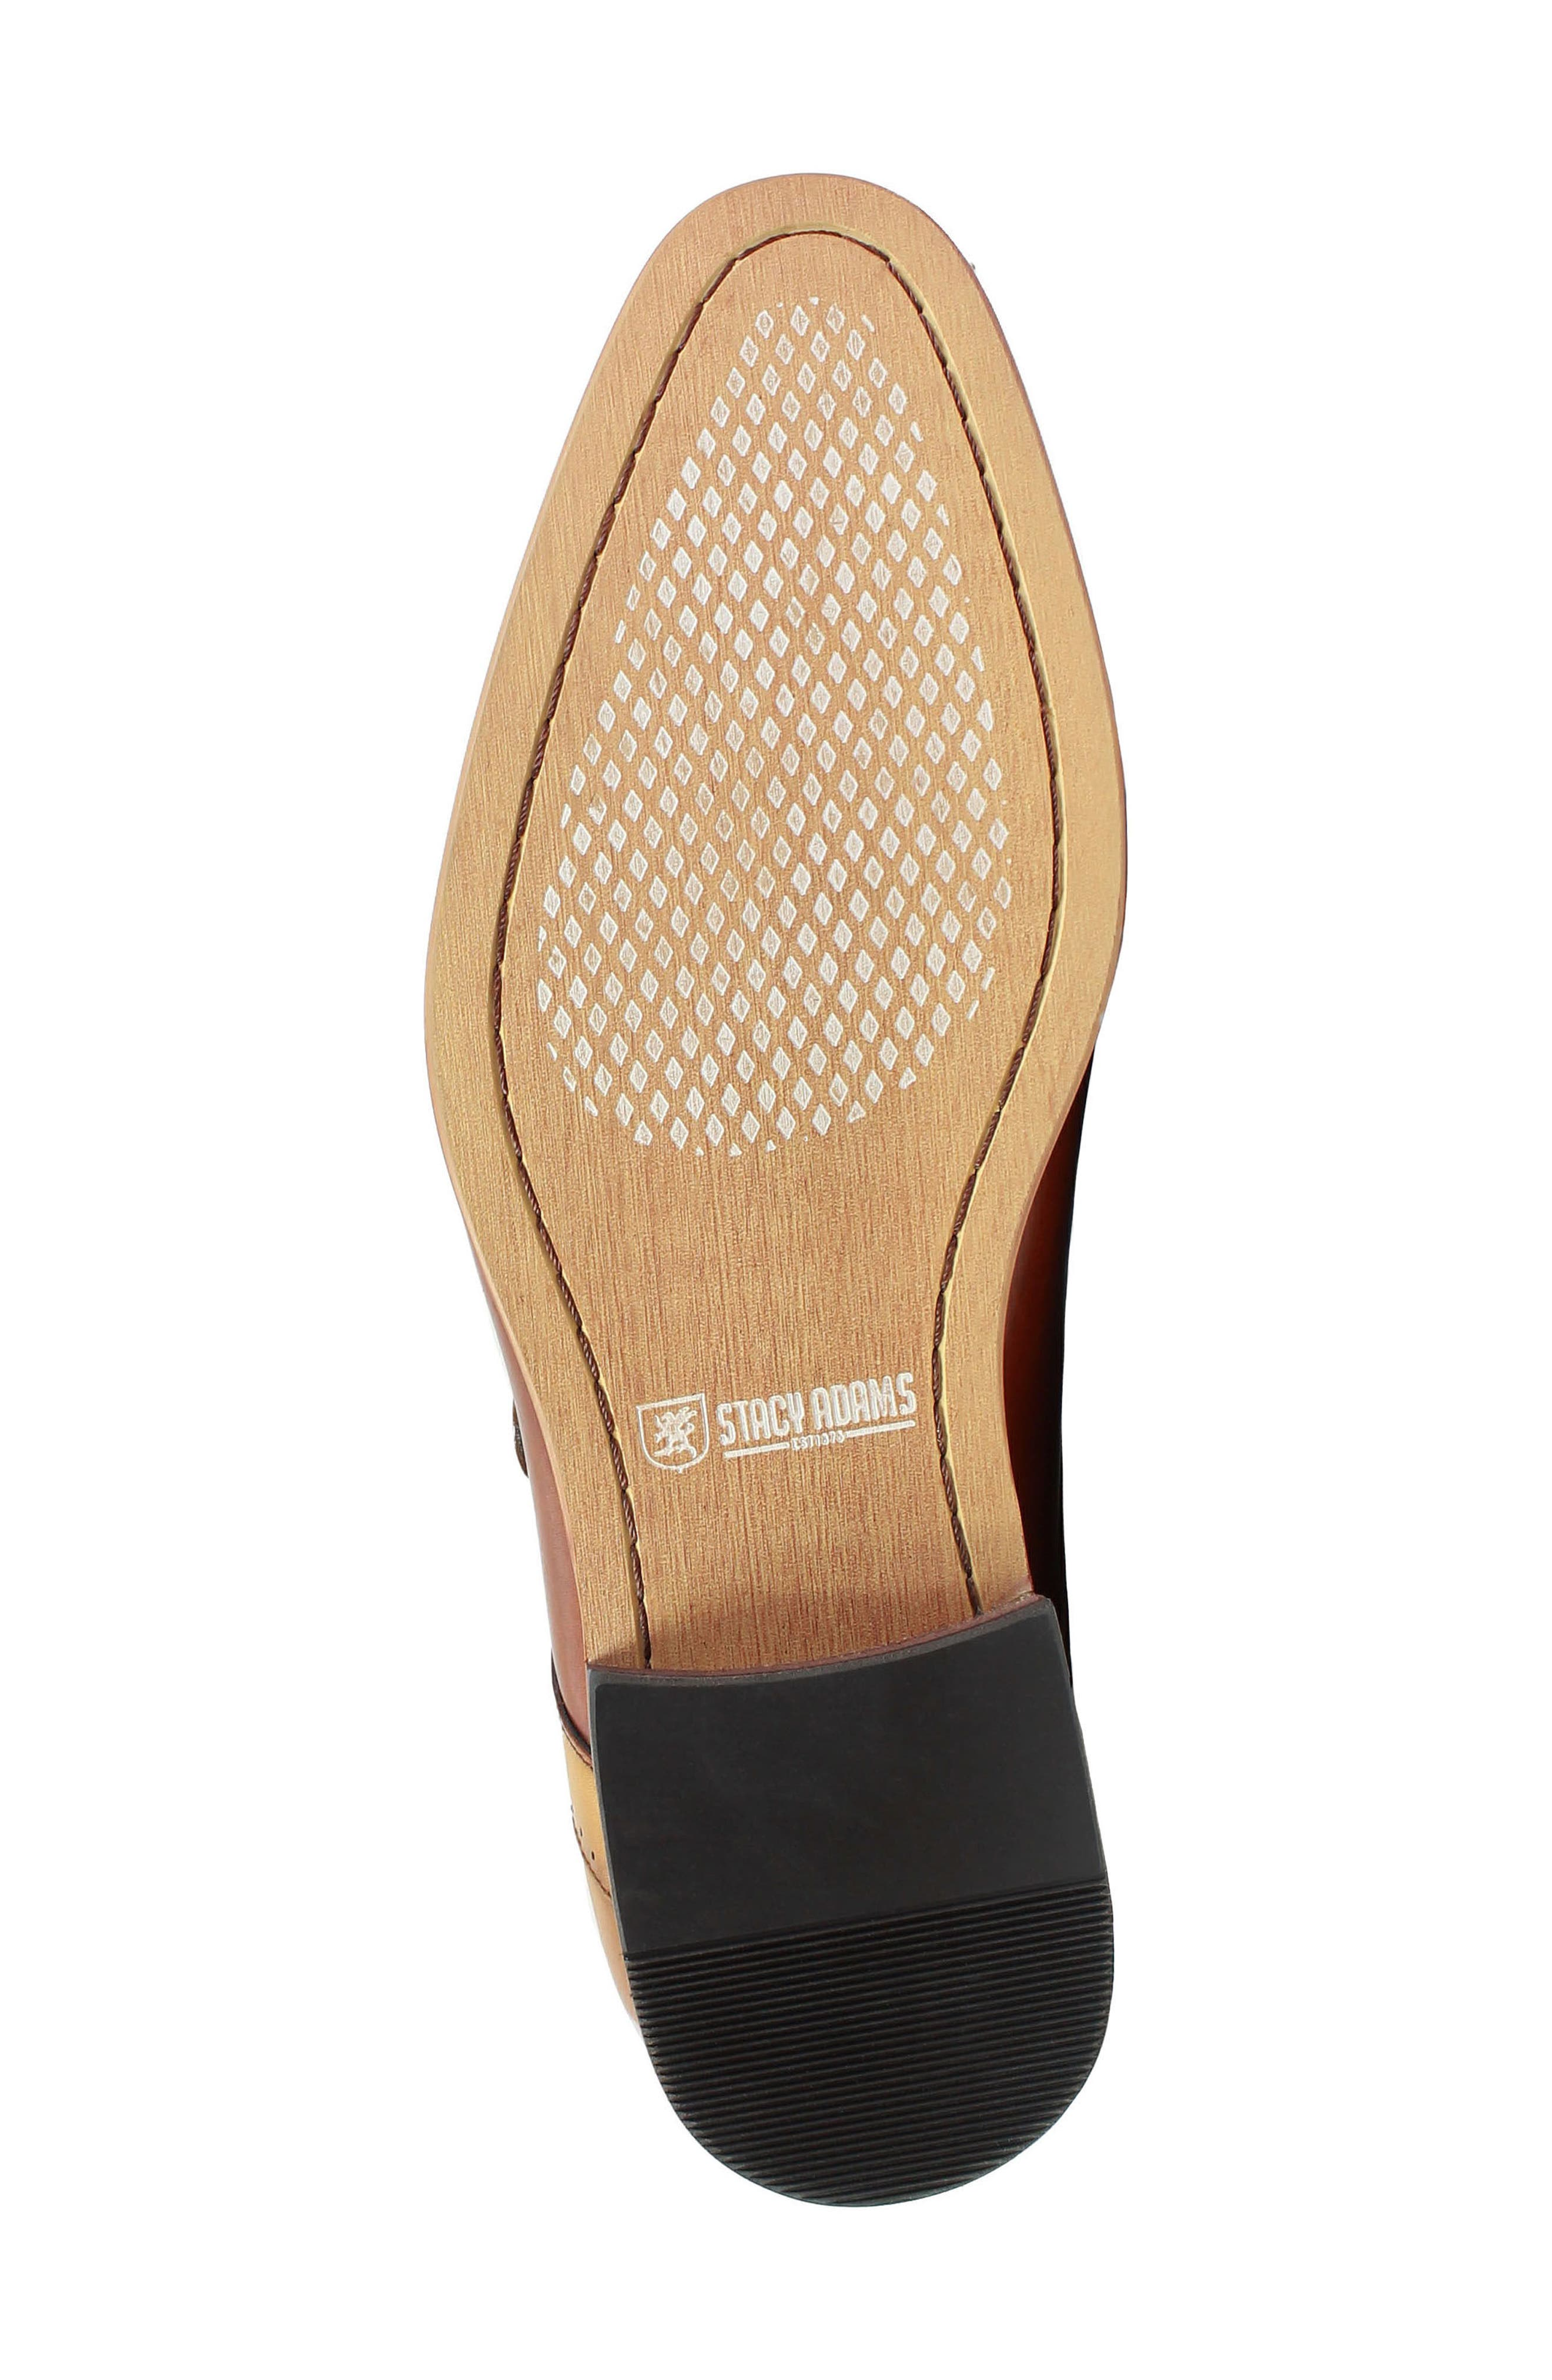 STACY ADAMS, Saxton Perforated Monk Strap Shoe, Alternate thumbnail 6, color, 201